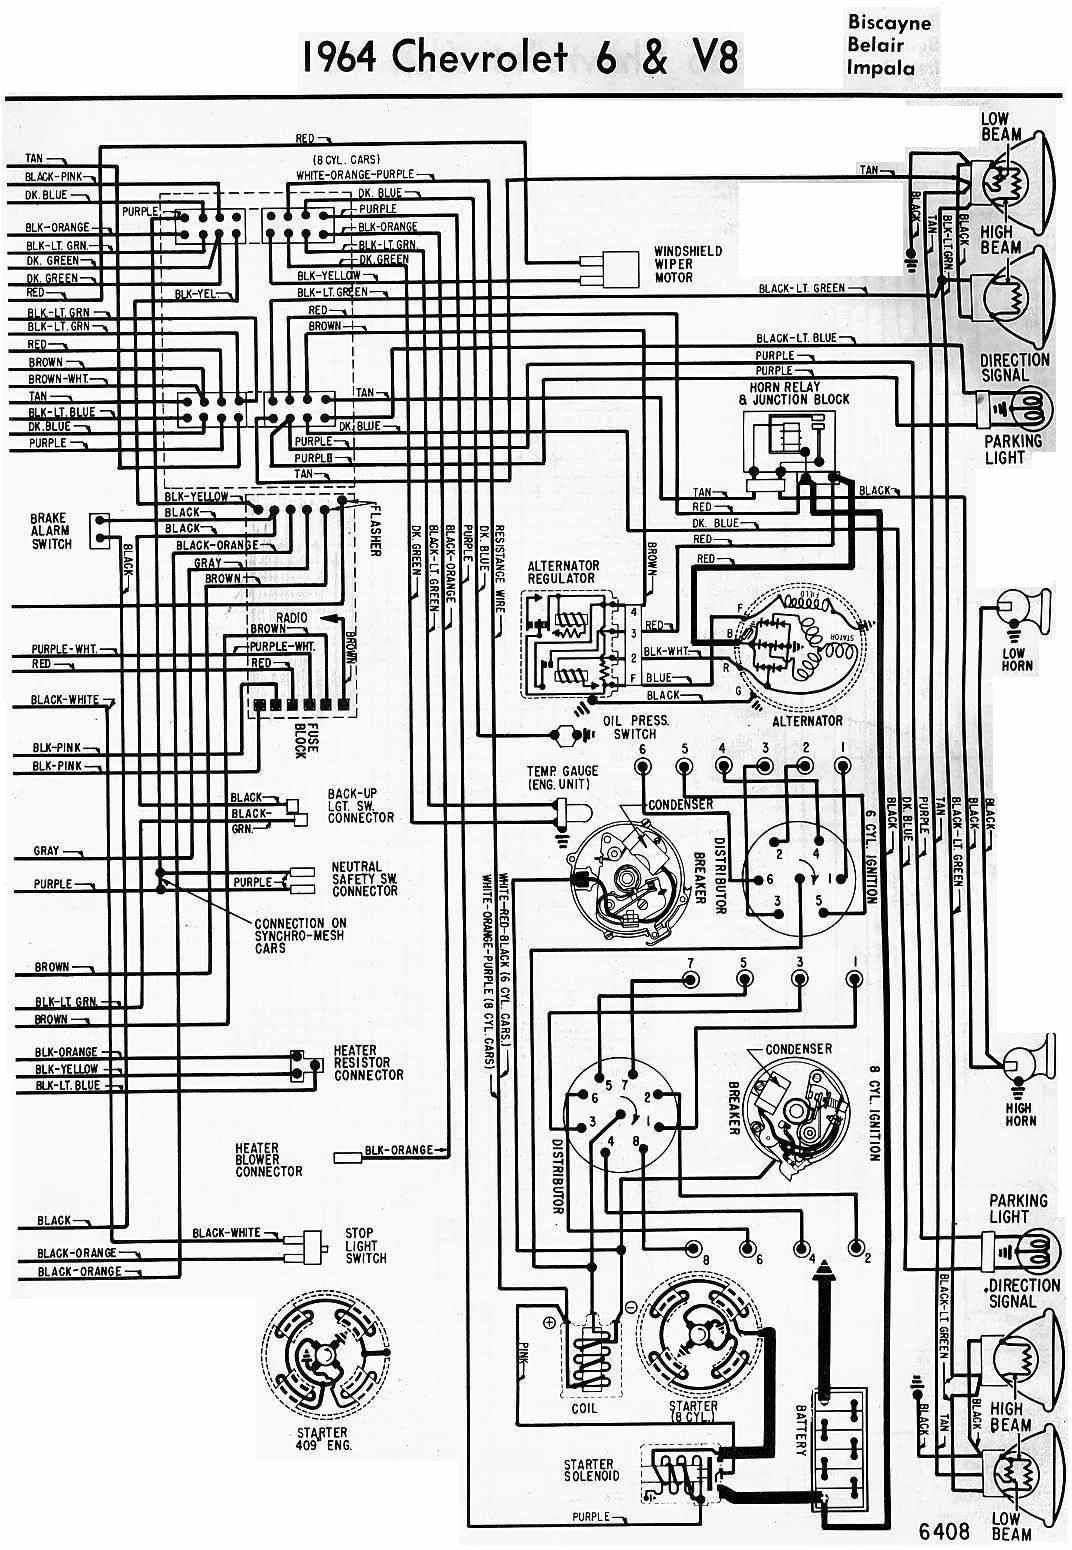 medium resolution of gm fuse box diagram 1964 impala wiring diagram paper 1964 chevy c10 fuse box diagram